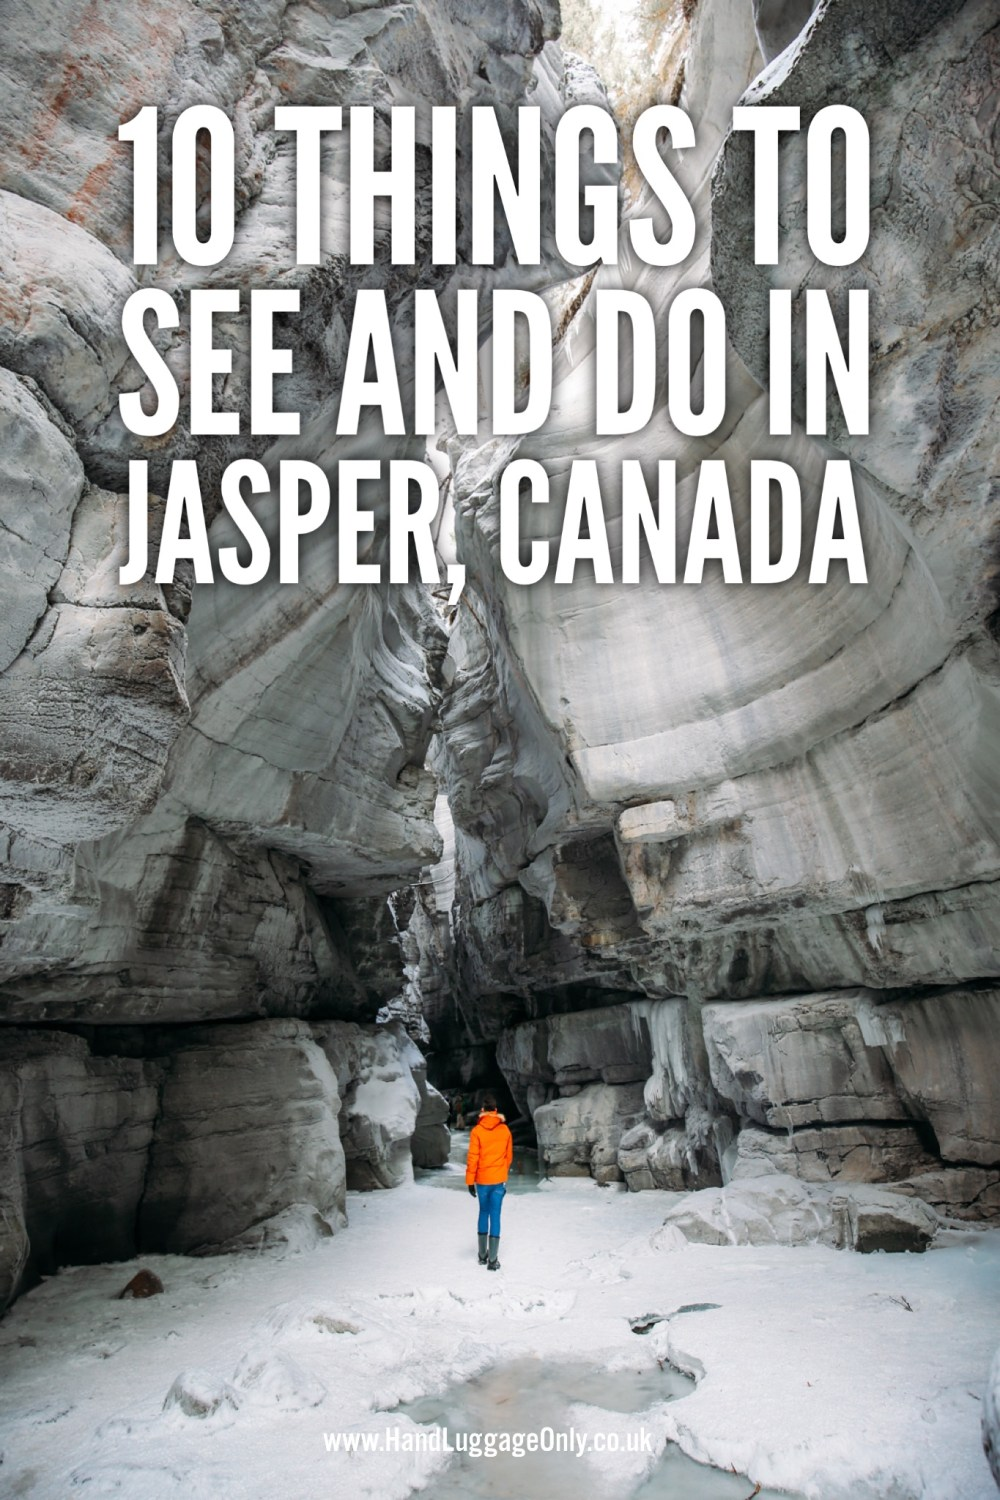 10 Things To See And Do In Jasper... in Alberta, Canada The Rockies